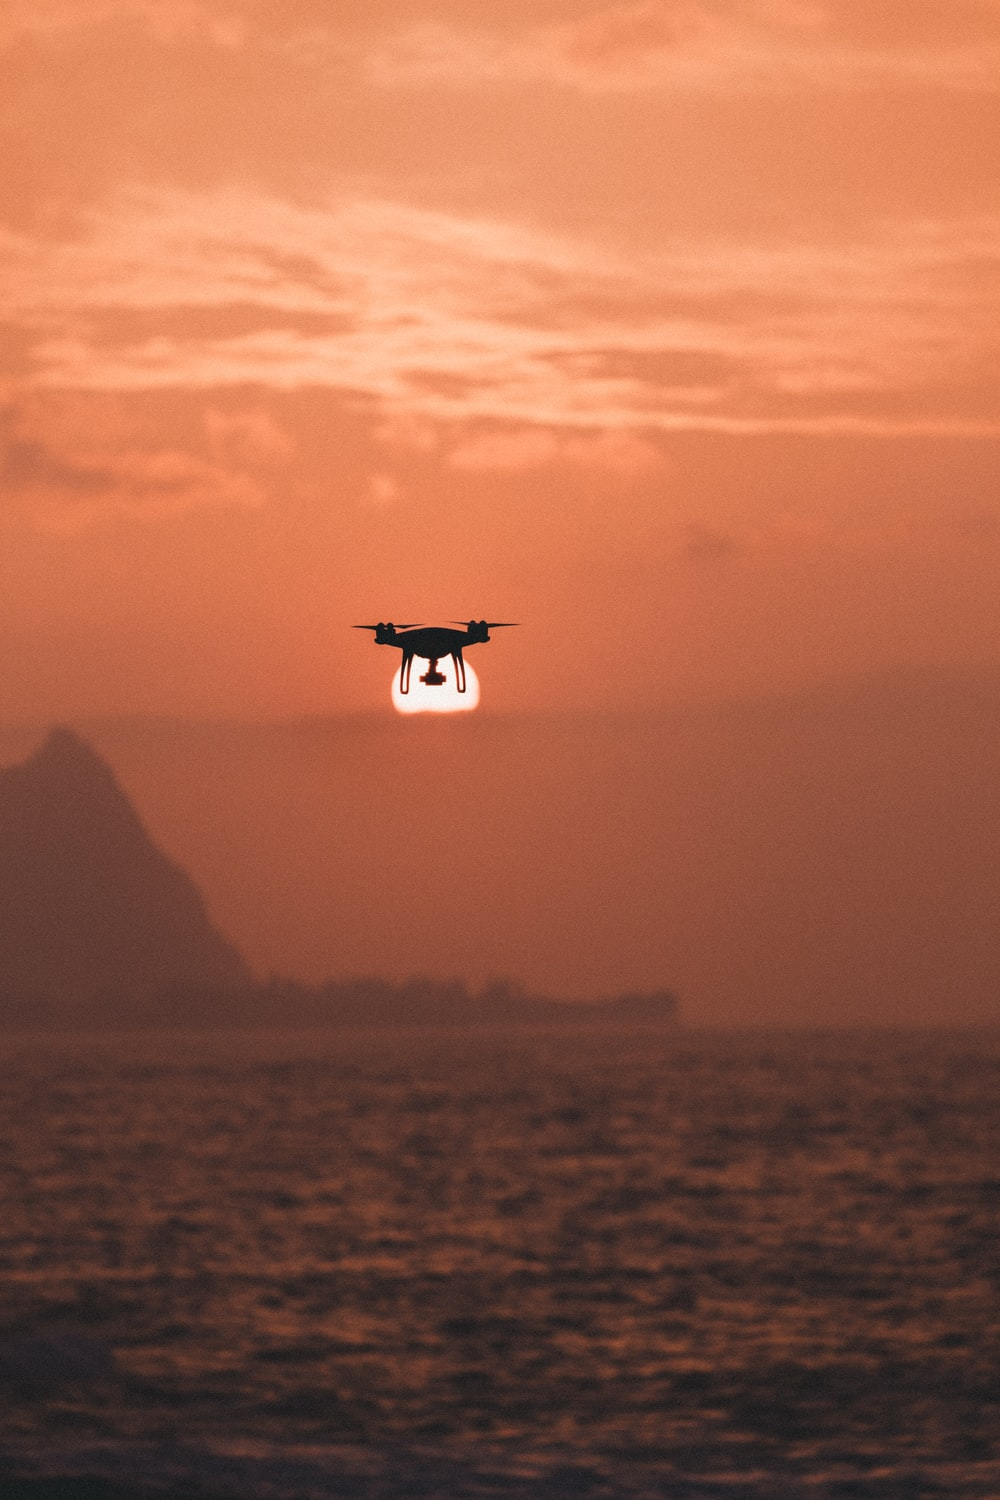 silhouette of drone hovering above body of water